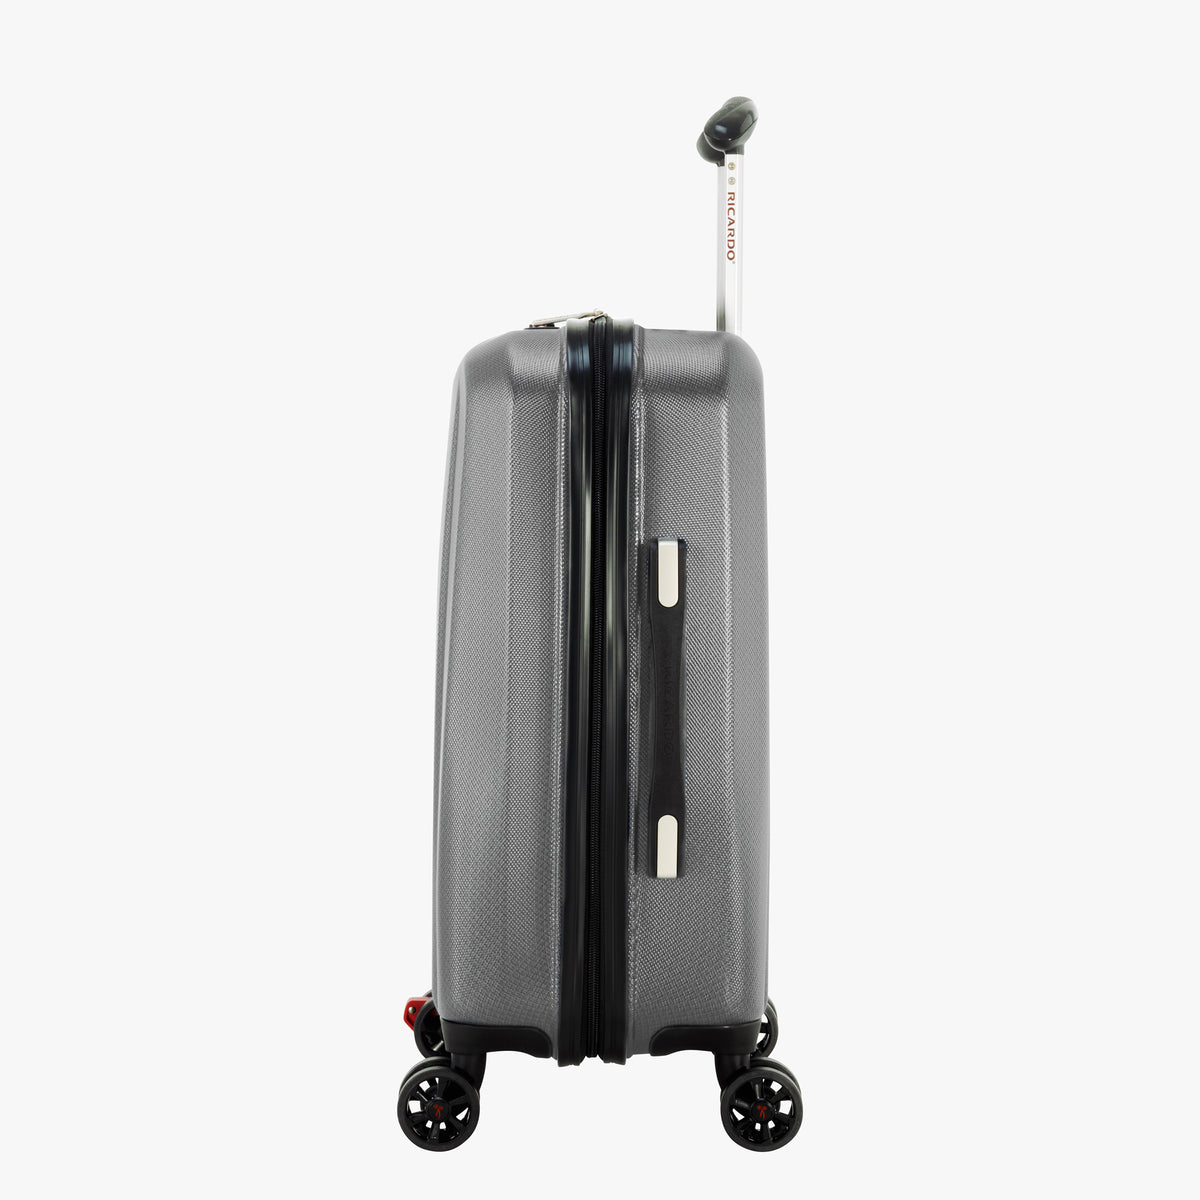 87b056a193be San Clemente 19 inch International Carry On Suitcase – Ricardo ...